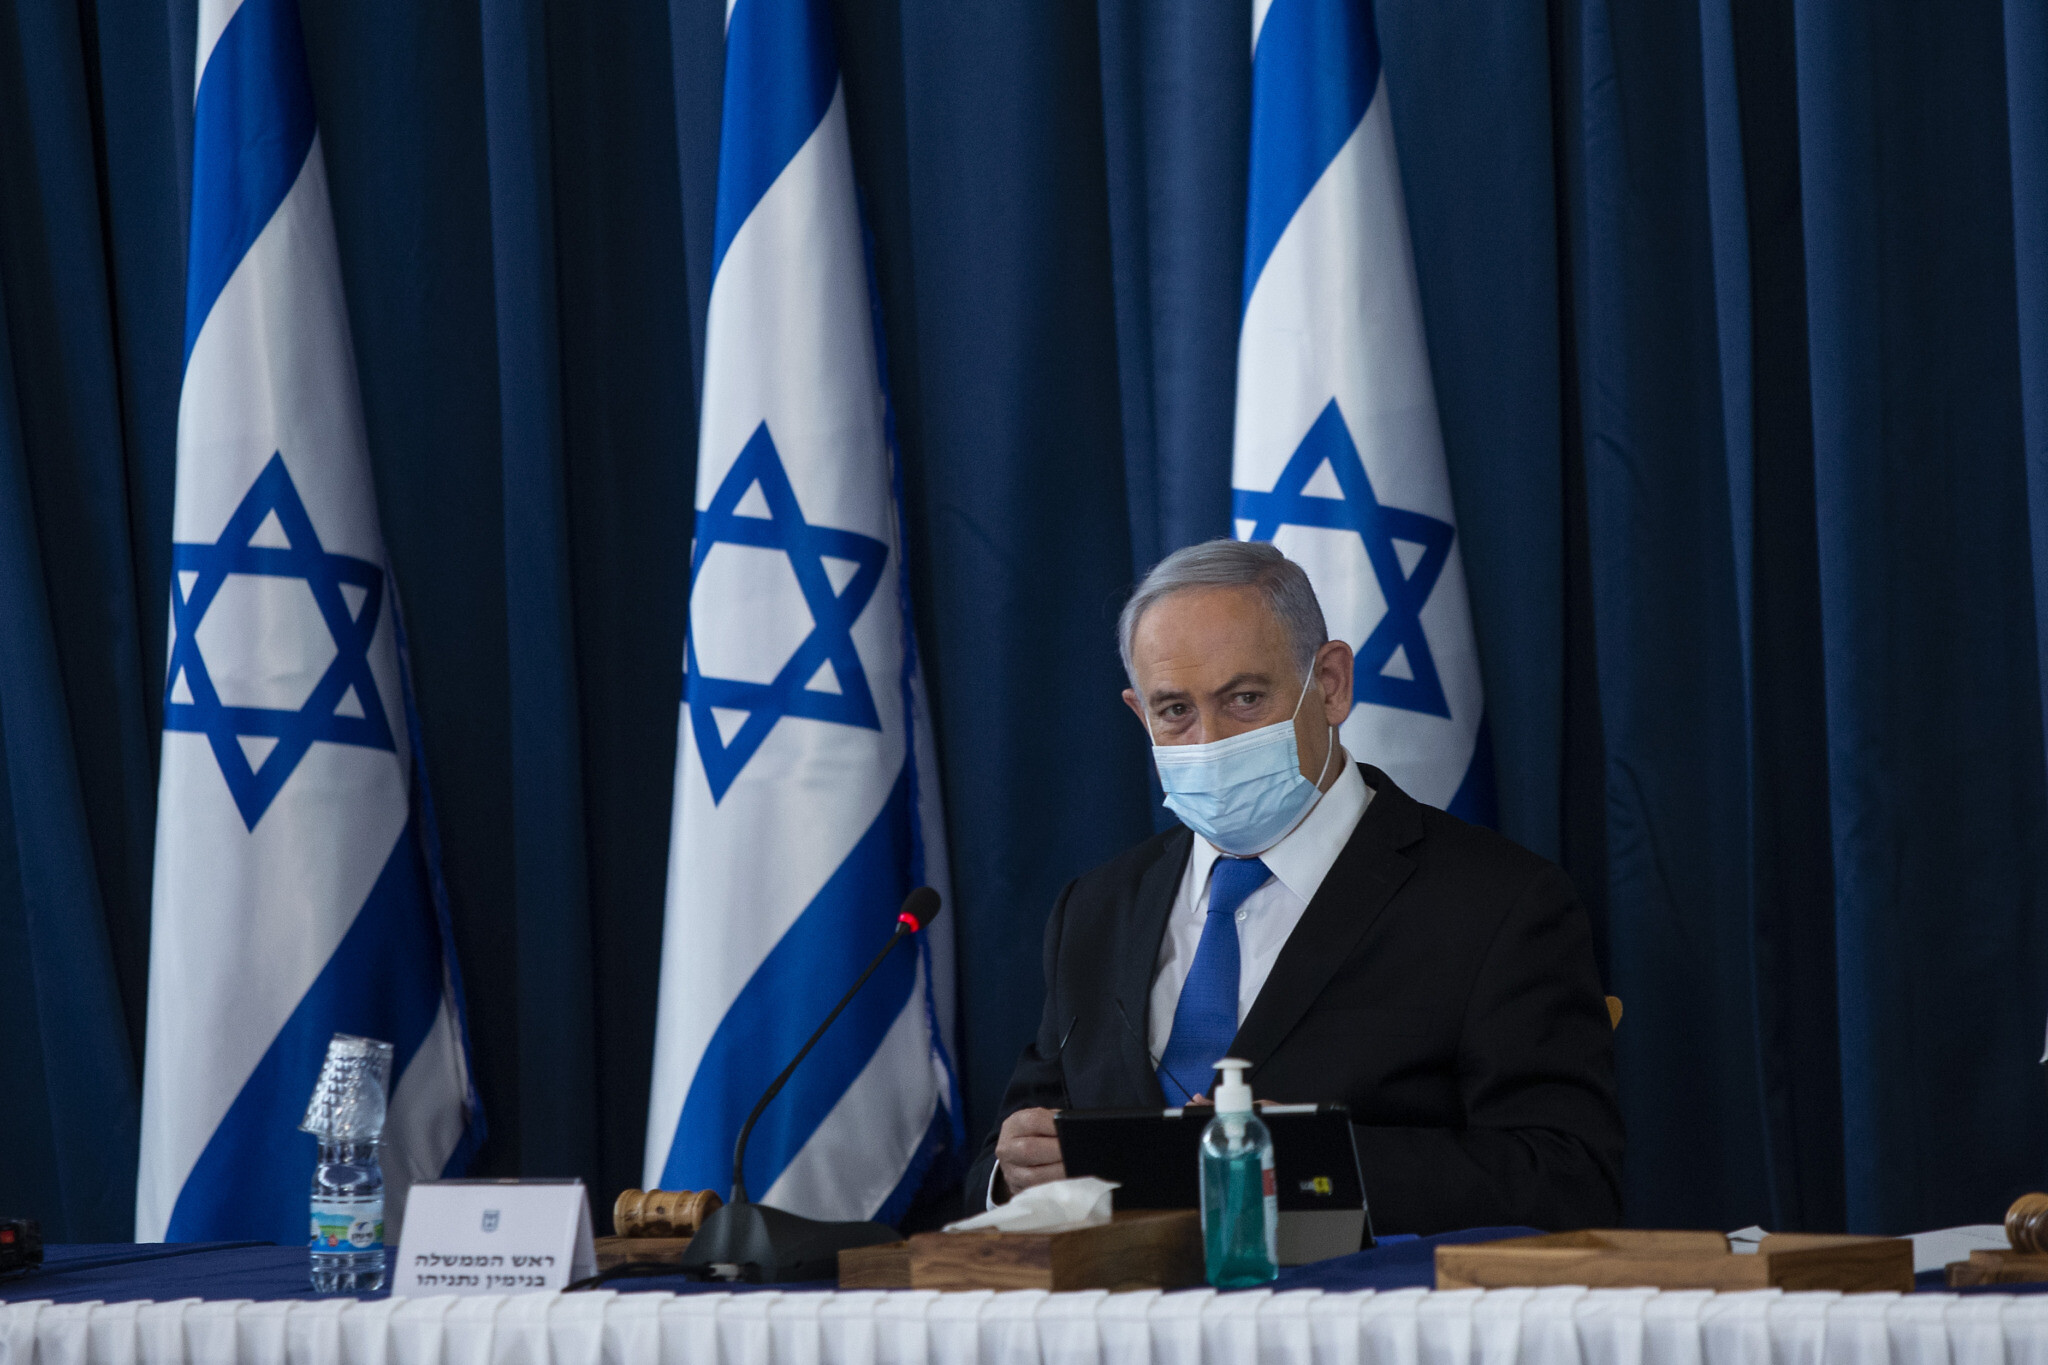 Prime Minister Benjamin Netanyahu at the weekly cabinet meeting, at the Ministry of Foreign Affairs in Jerusalem on July 5, 2020. (Amit Shabi)